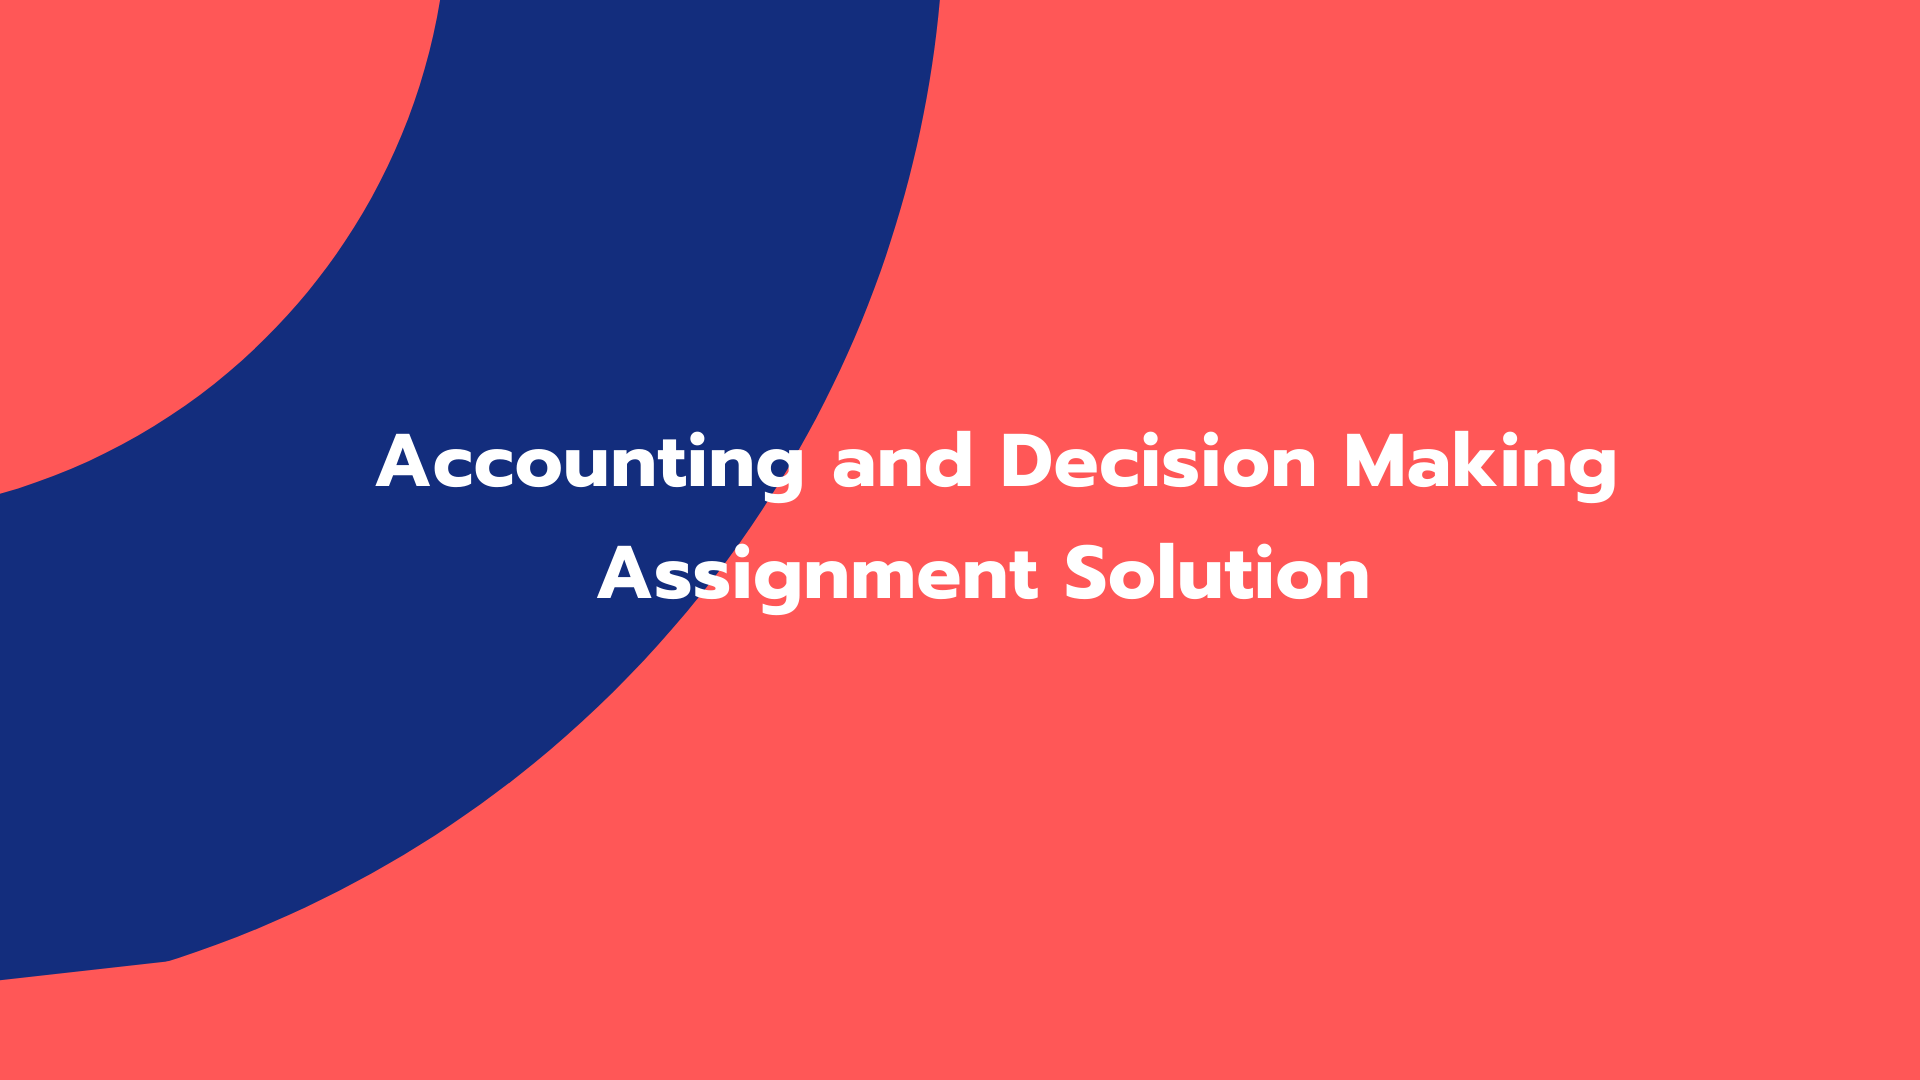 Accounting and Decision Making Assignment Solution